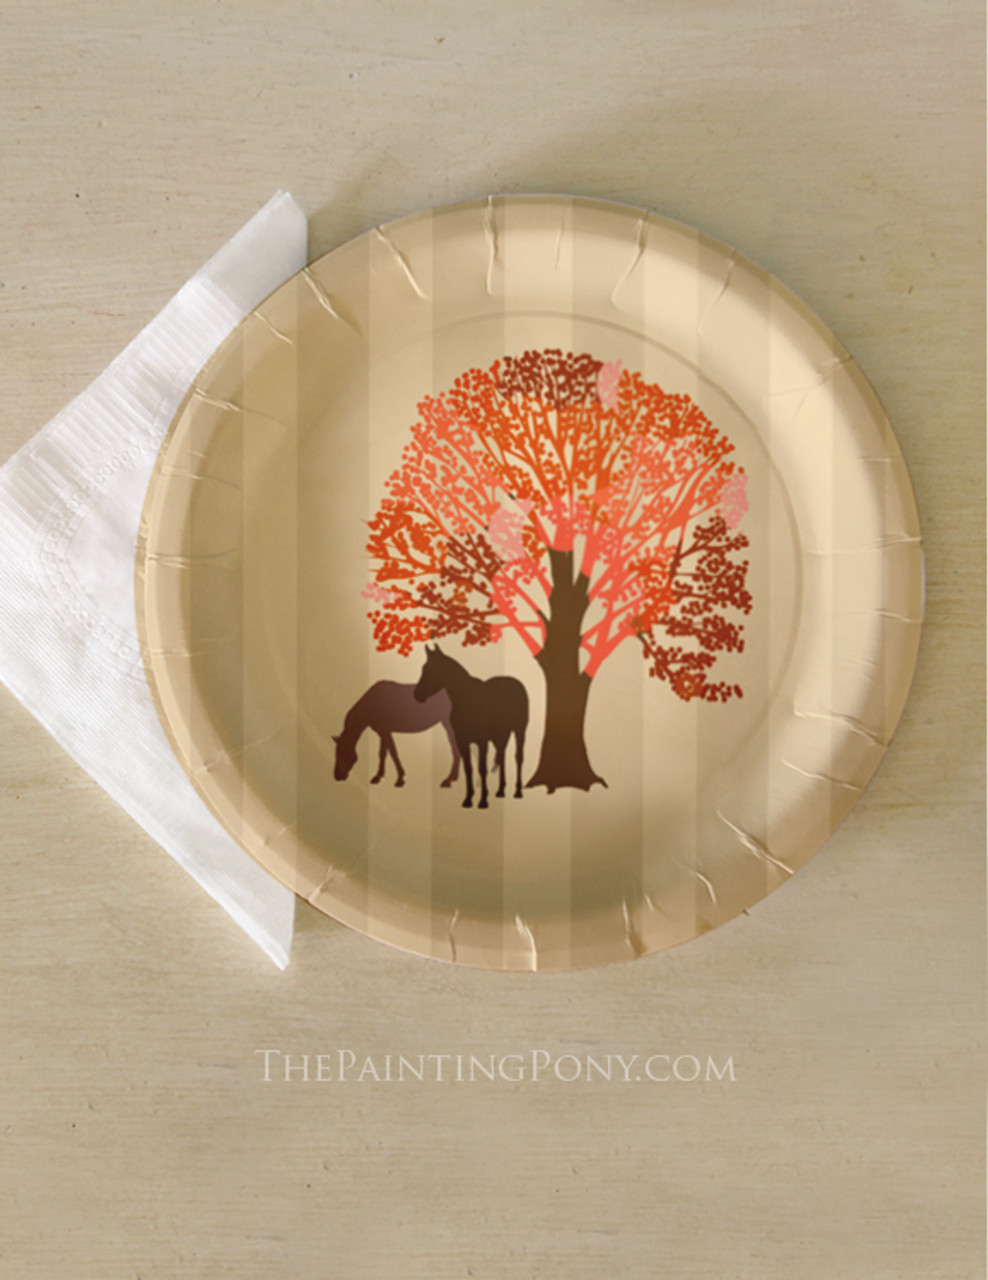 Autumn Equestrian Thanksgiving Horse Themed Paper Party Plates (8 pk) & Autumn Equestrian Thanksgiving Horse Themed Paper Party Plates (8 pk ...